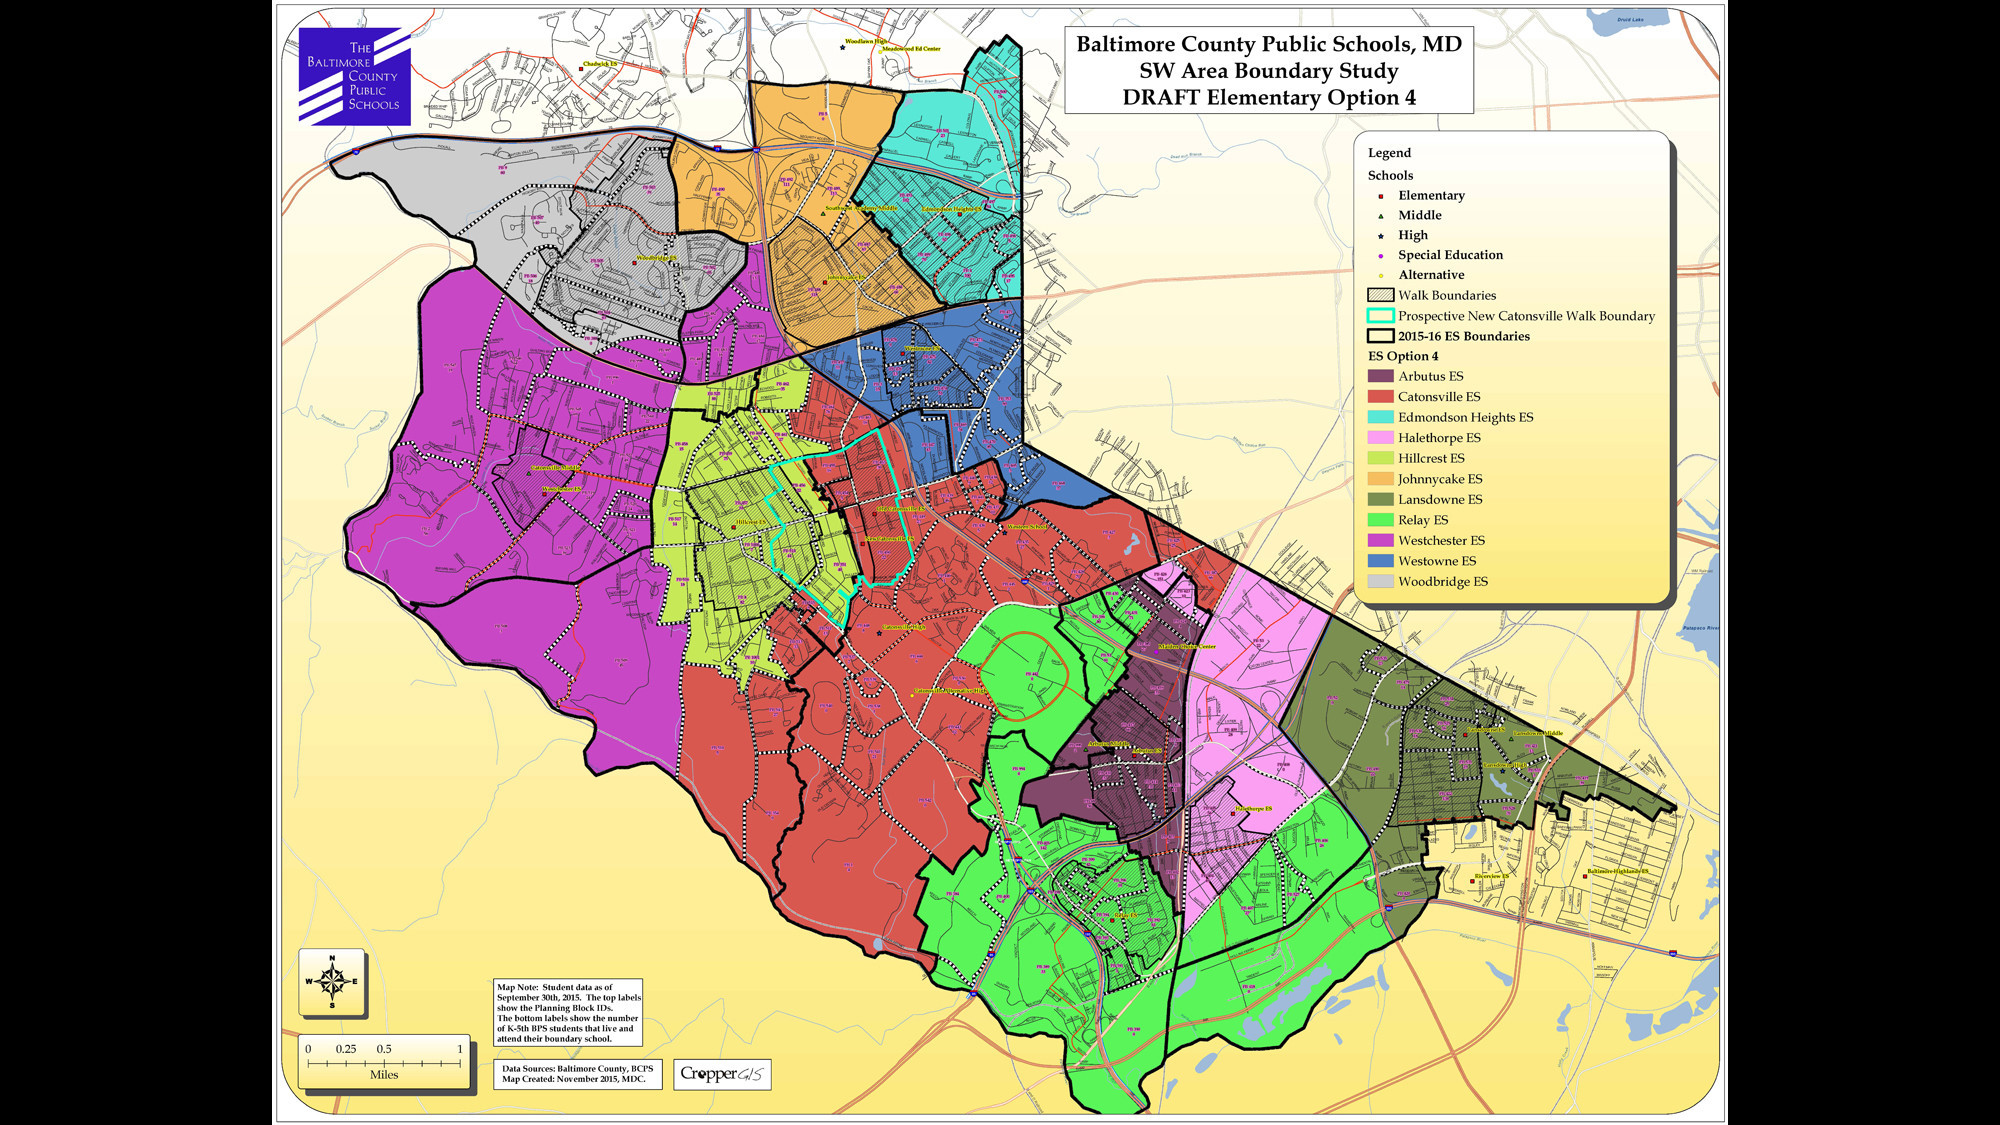 Baltimore County Public Schools Southwest Area Boundary Study maps ...